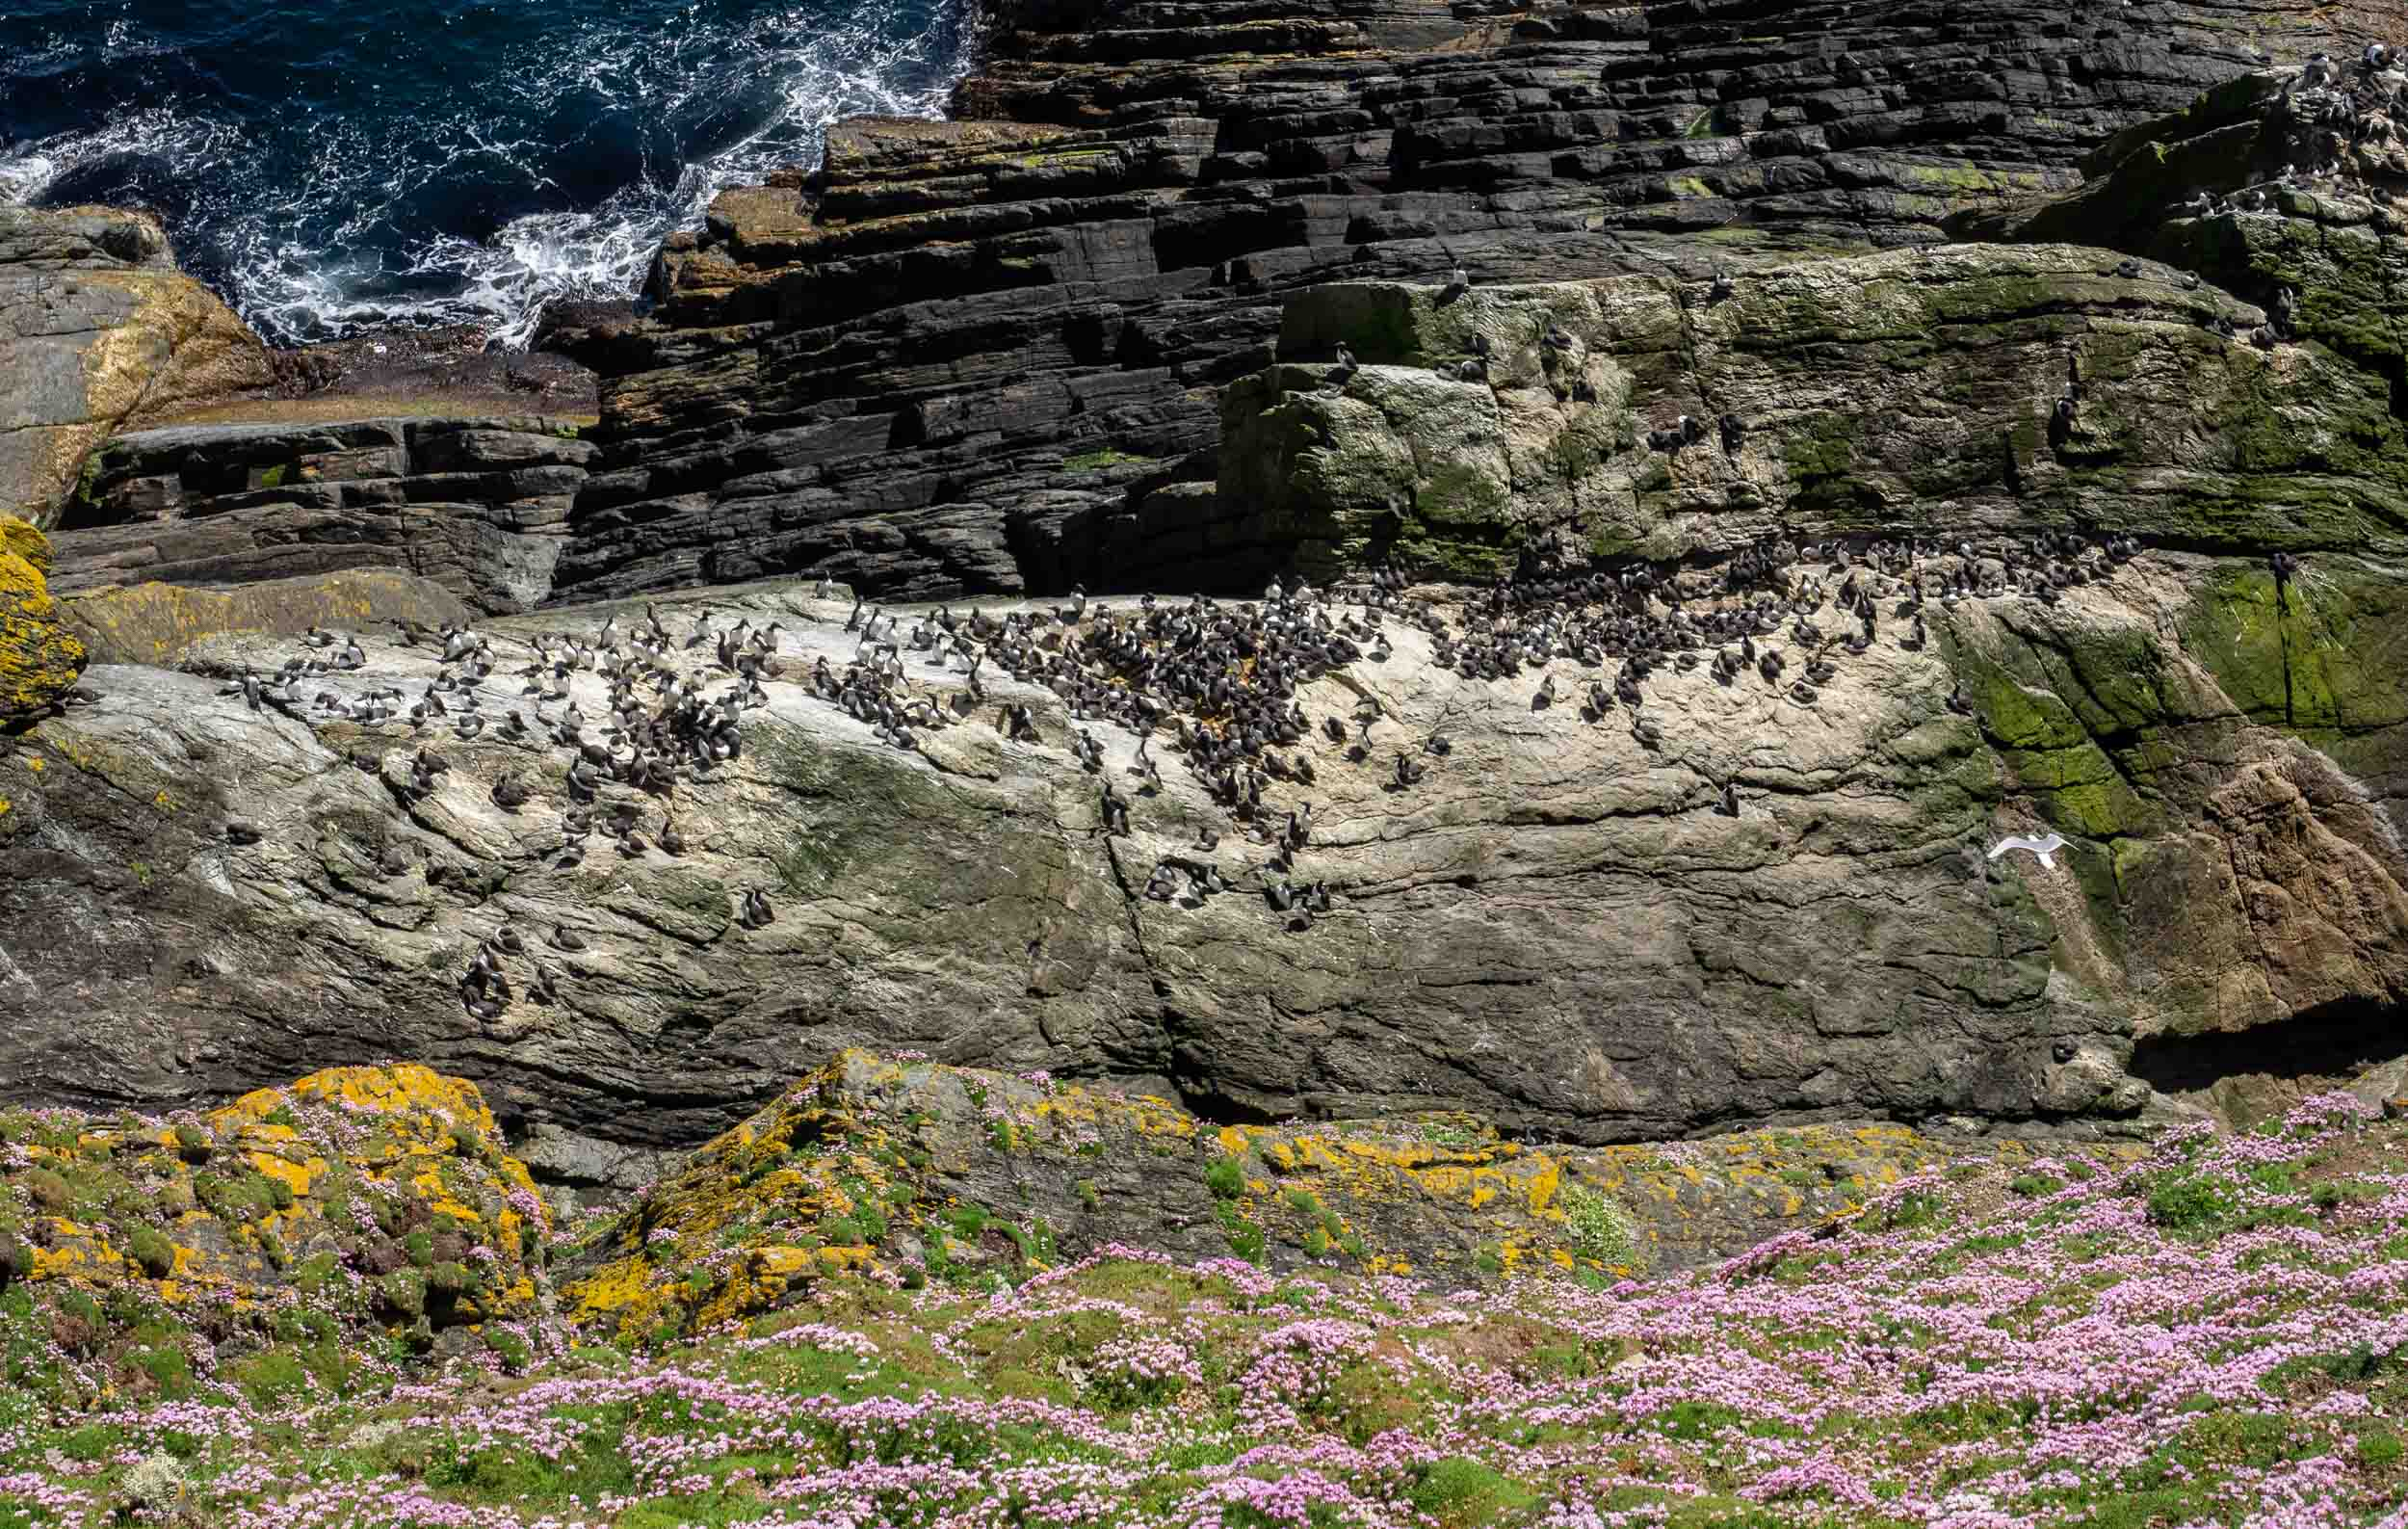 Looking over the edge of the cliffs of Sumburgh Head, to the guillemot colony carpeting the rocks.   Common Guillemots  ( Longwi  in Shetland,  Murres  in north America) –  Uria aalge